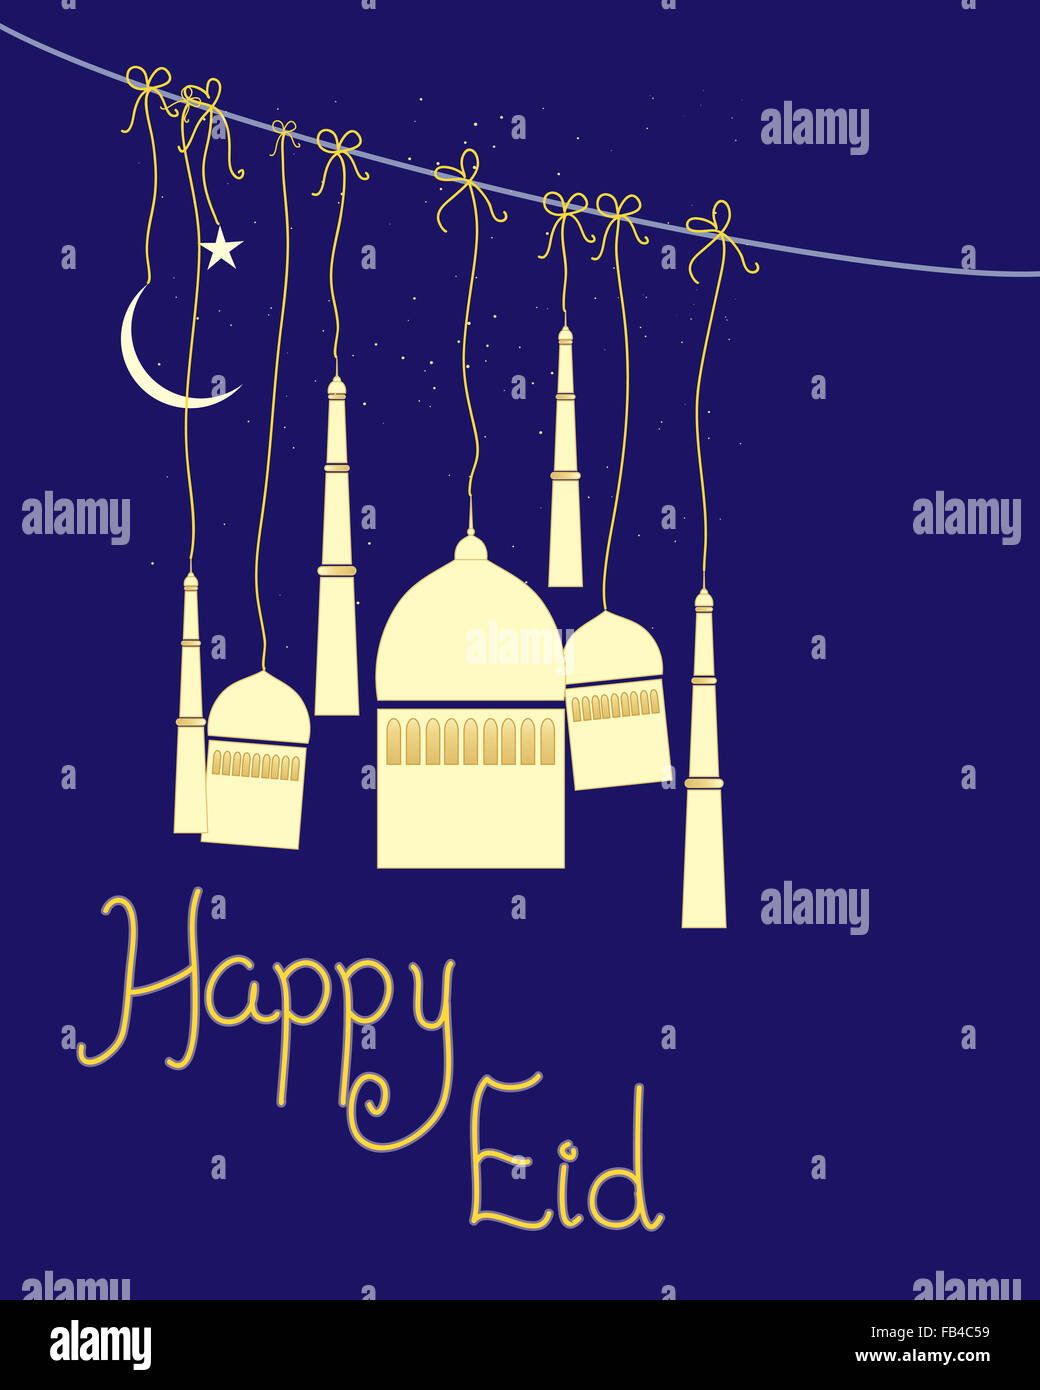 an illustration of an abstract greeting card for the Muslim festival of Eid with stylized mosque and the words happy - Stock Image